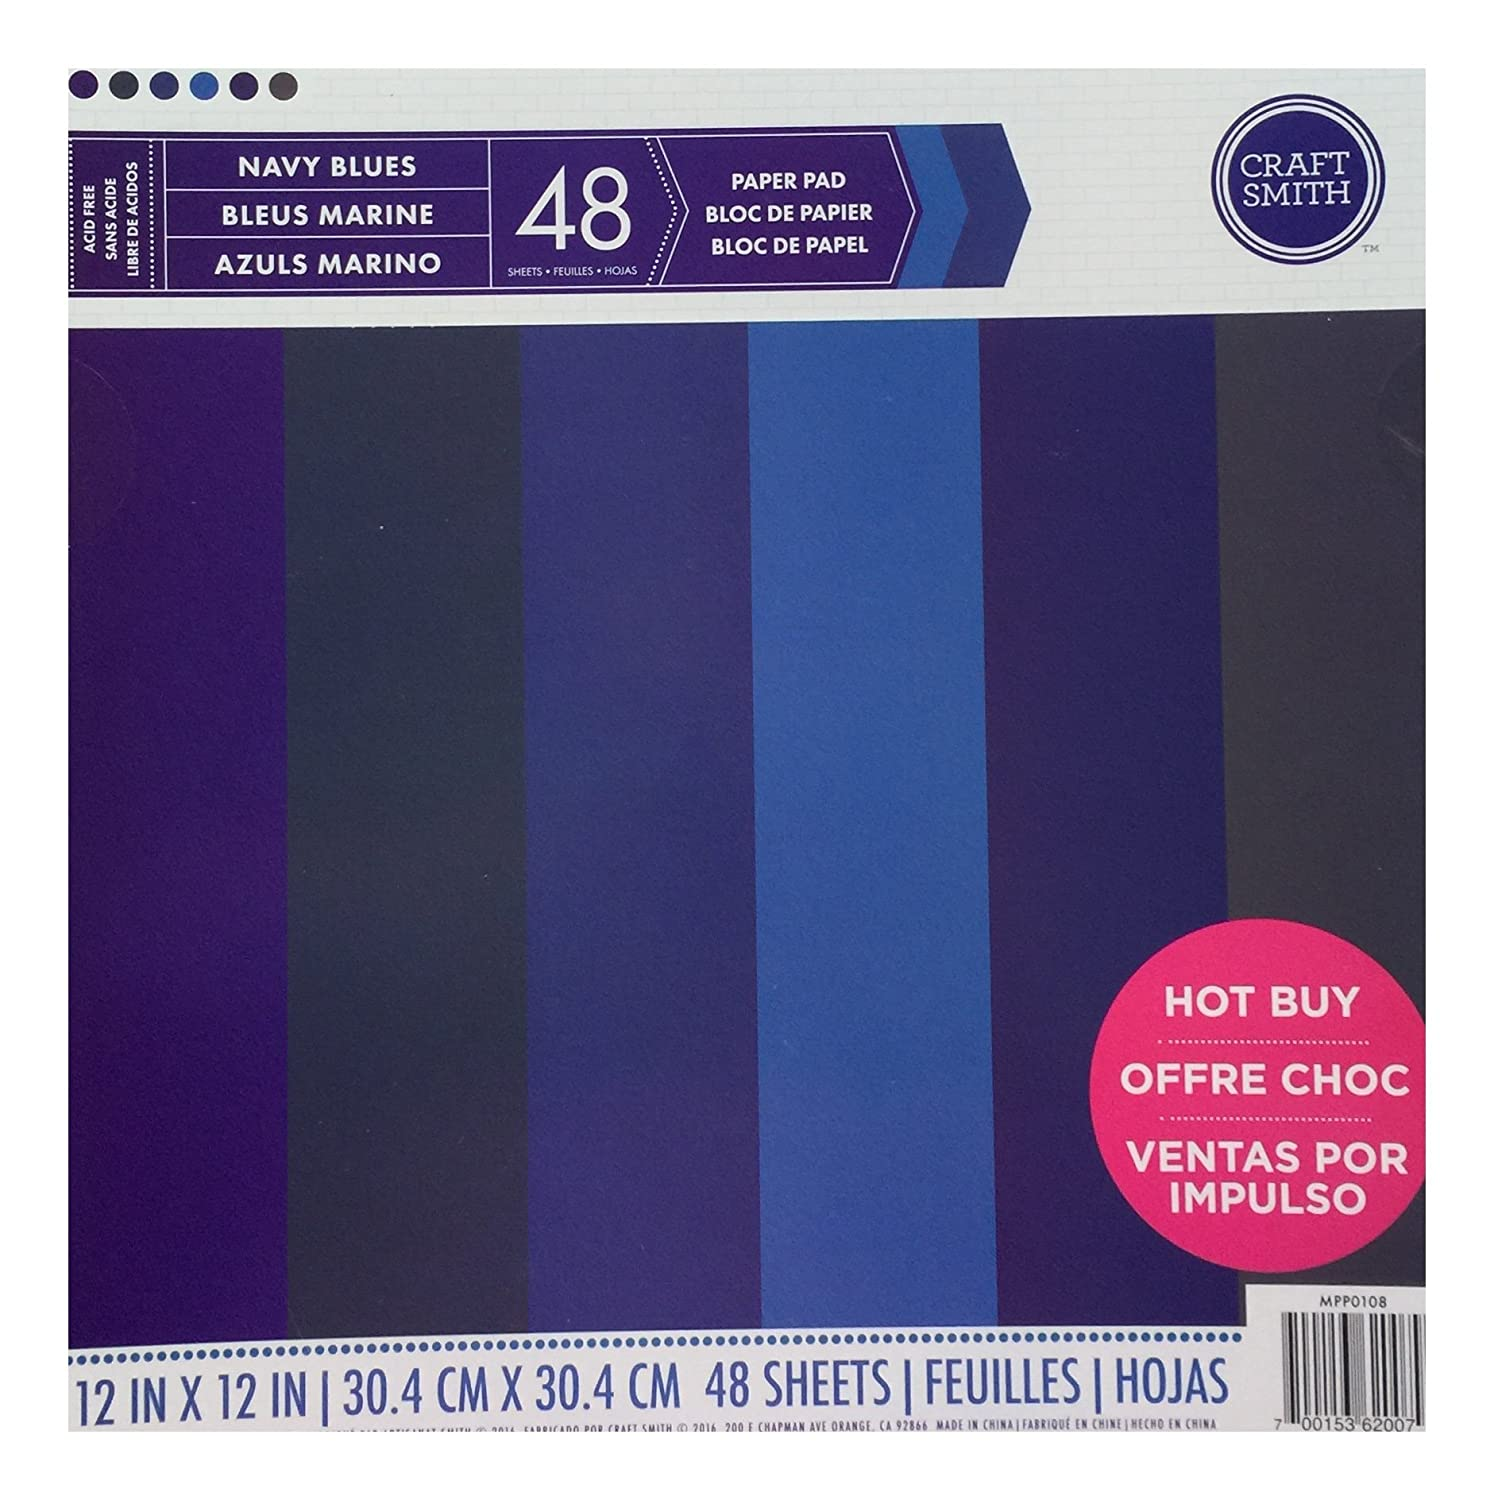 Craft Smith Paper Pad 12X12 NAVY BLUES by Craft Smith B01B1YYCNY